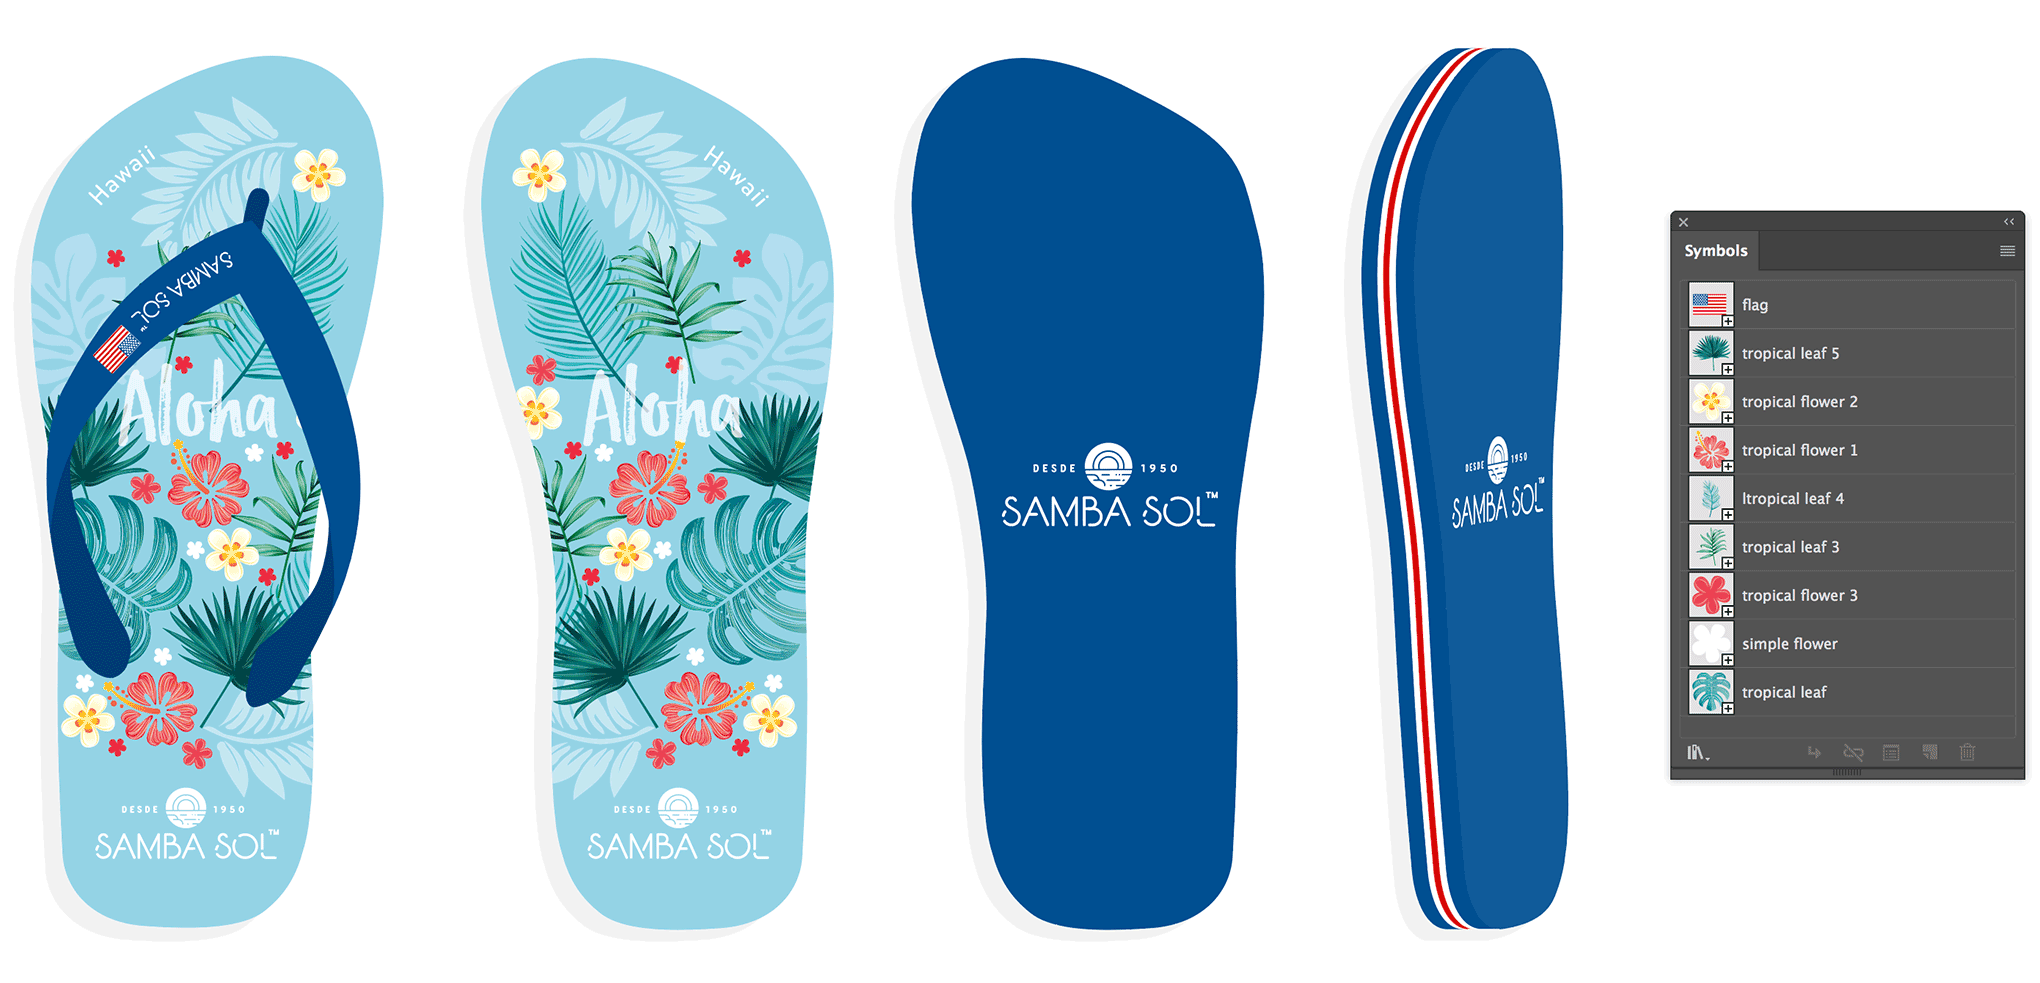 One of the many flip-flops designs created for Samba Sol. This is the Hawaii version.